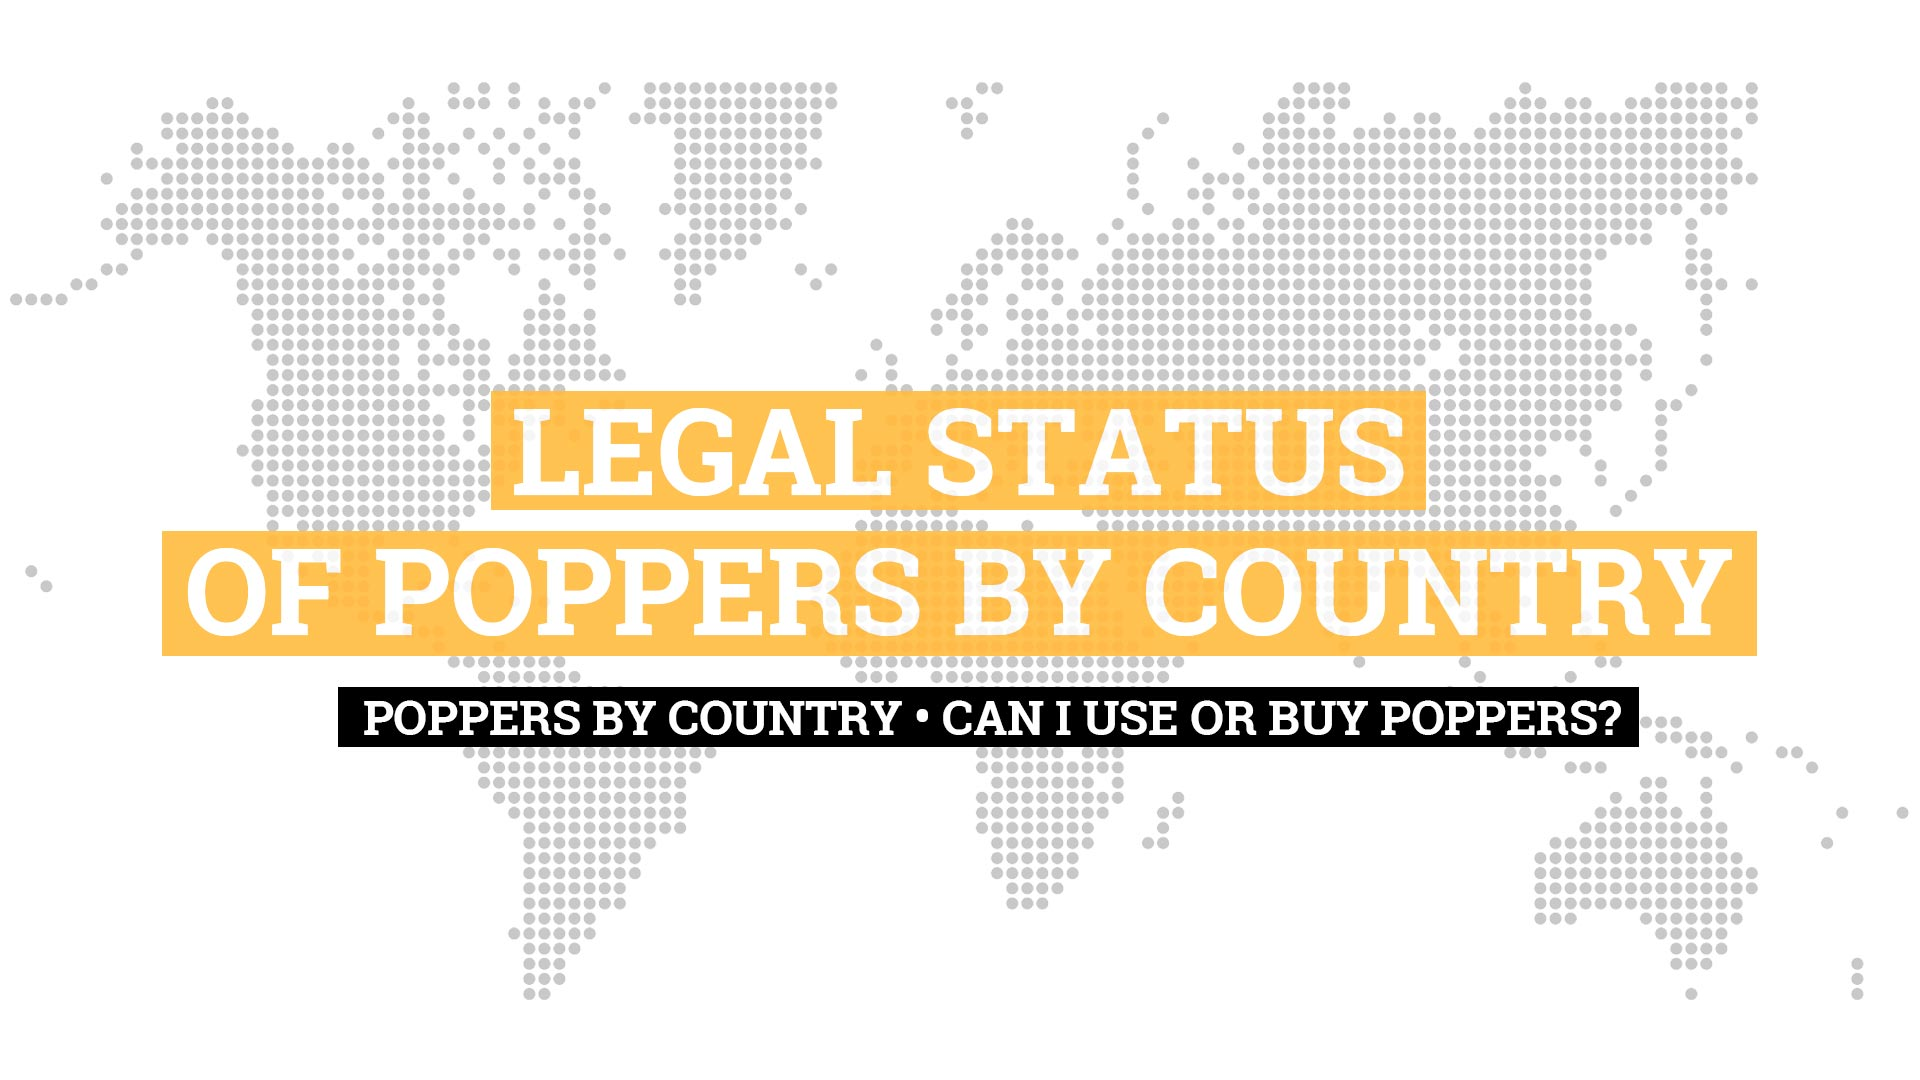 Poppers by country - Can I use or buy Poppers?